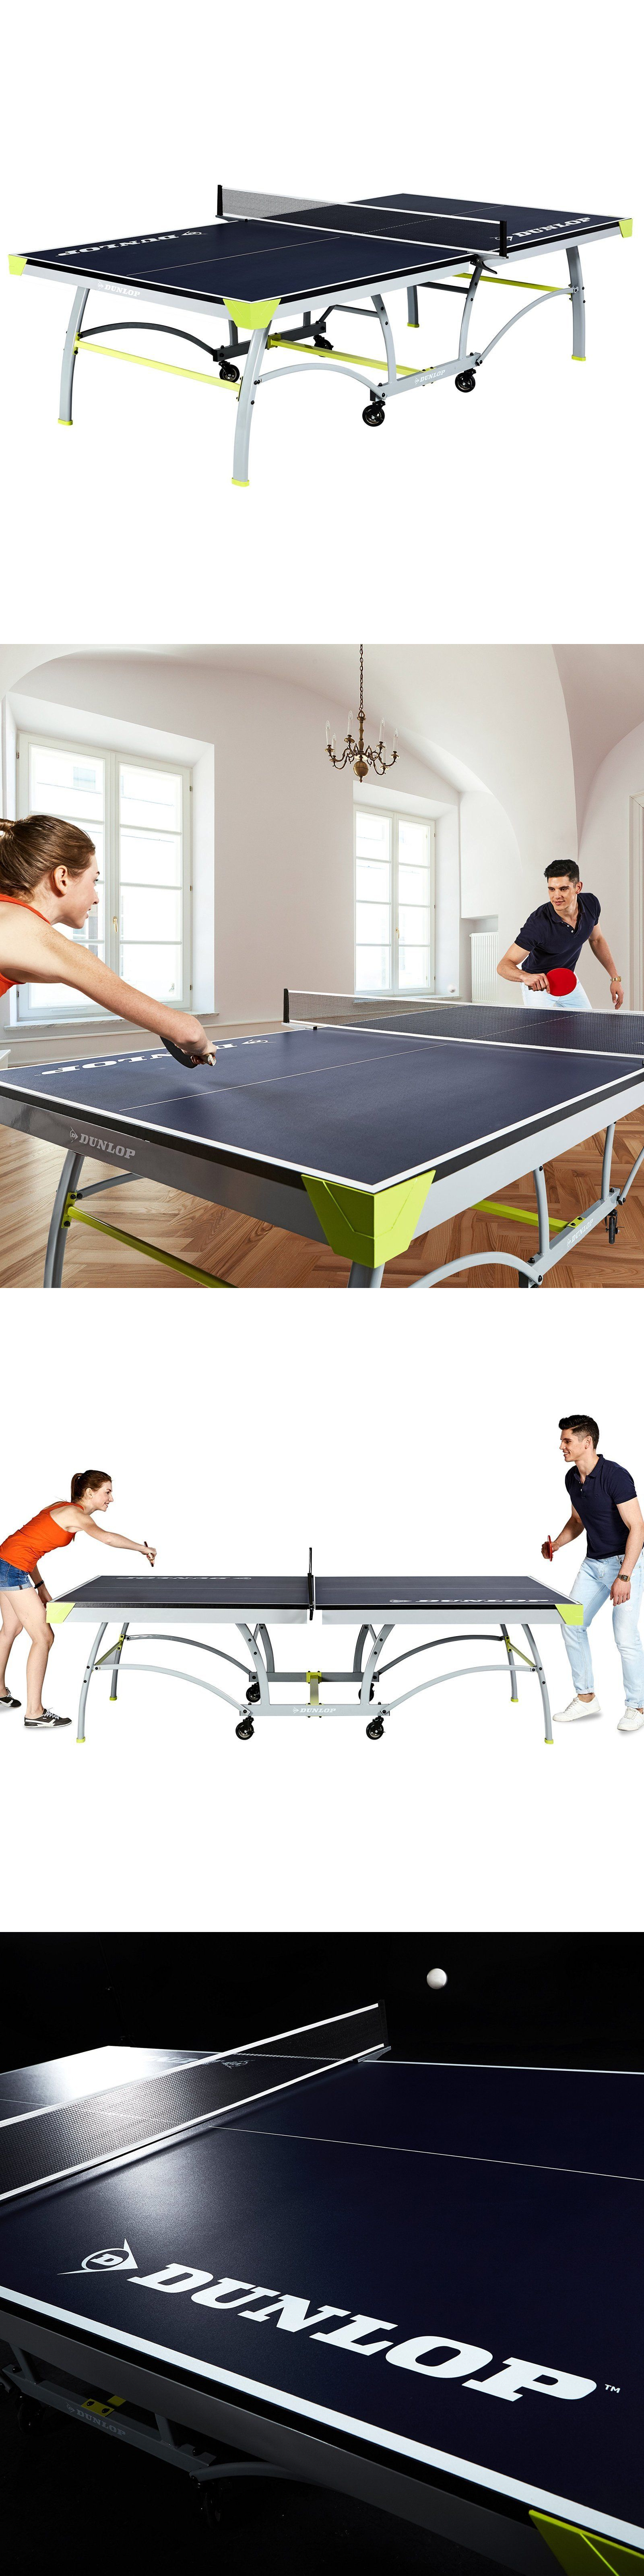 Paddles 36277: Tennis Table Indoor Outdoor 2 Piece Folding Tournament Size Ping  Pong Table